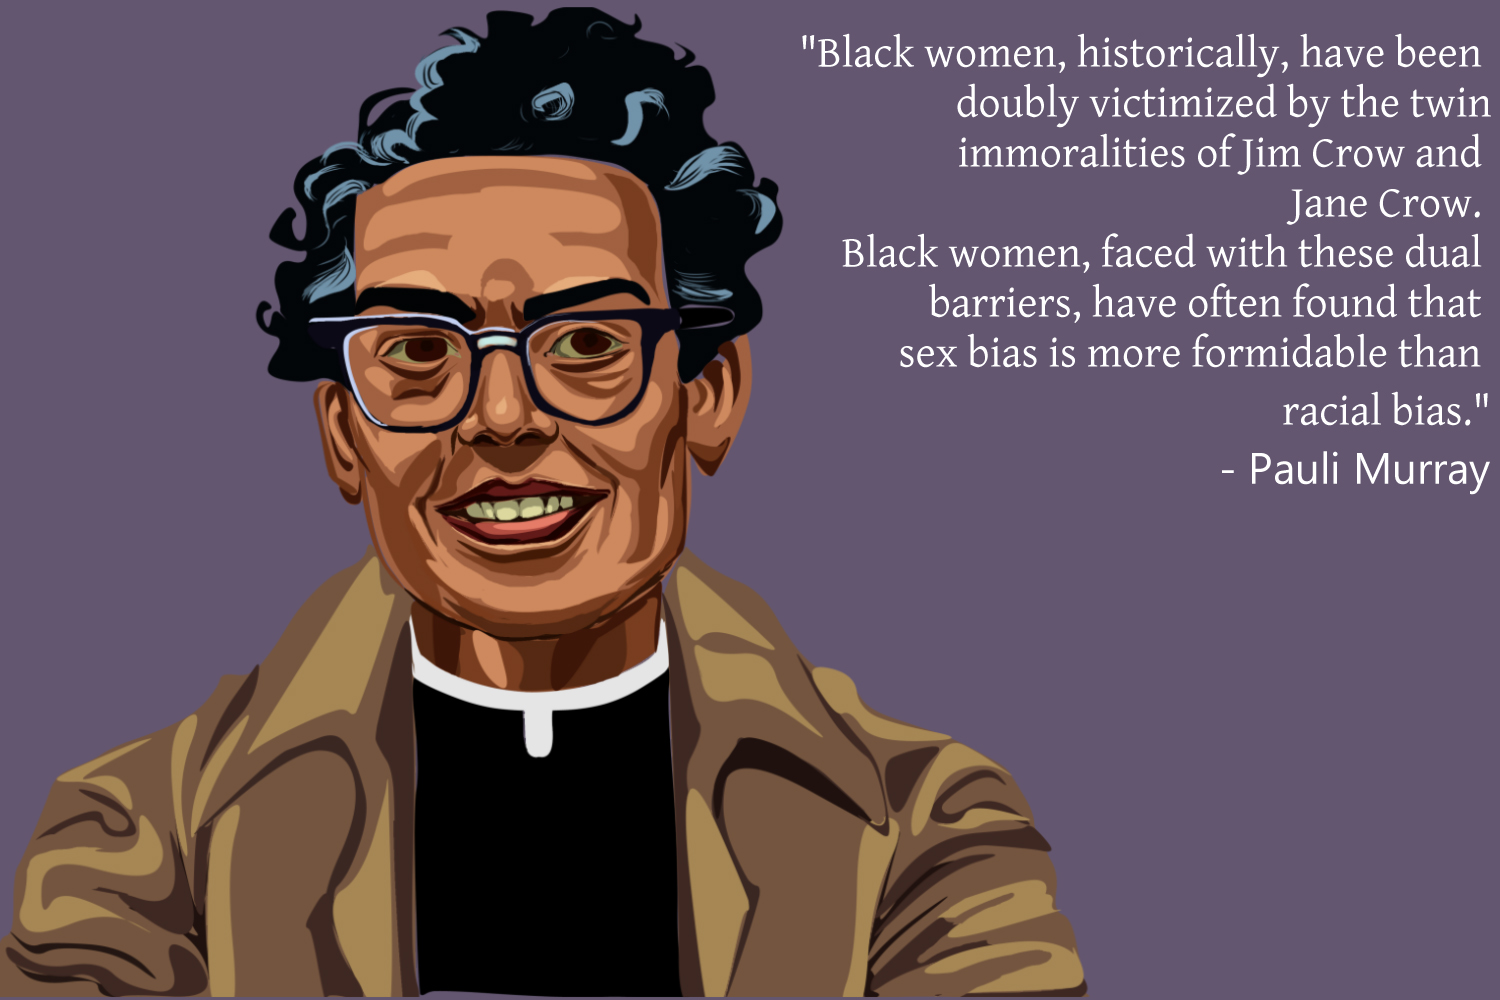 a visual tribute to an unsung hero of black history pauli murray paulimurray kiara original cw jpg